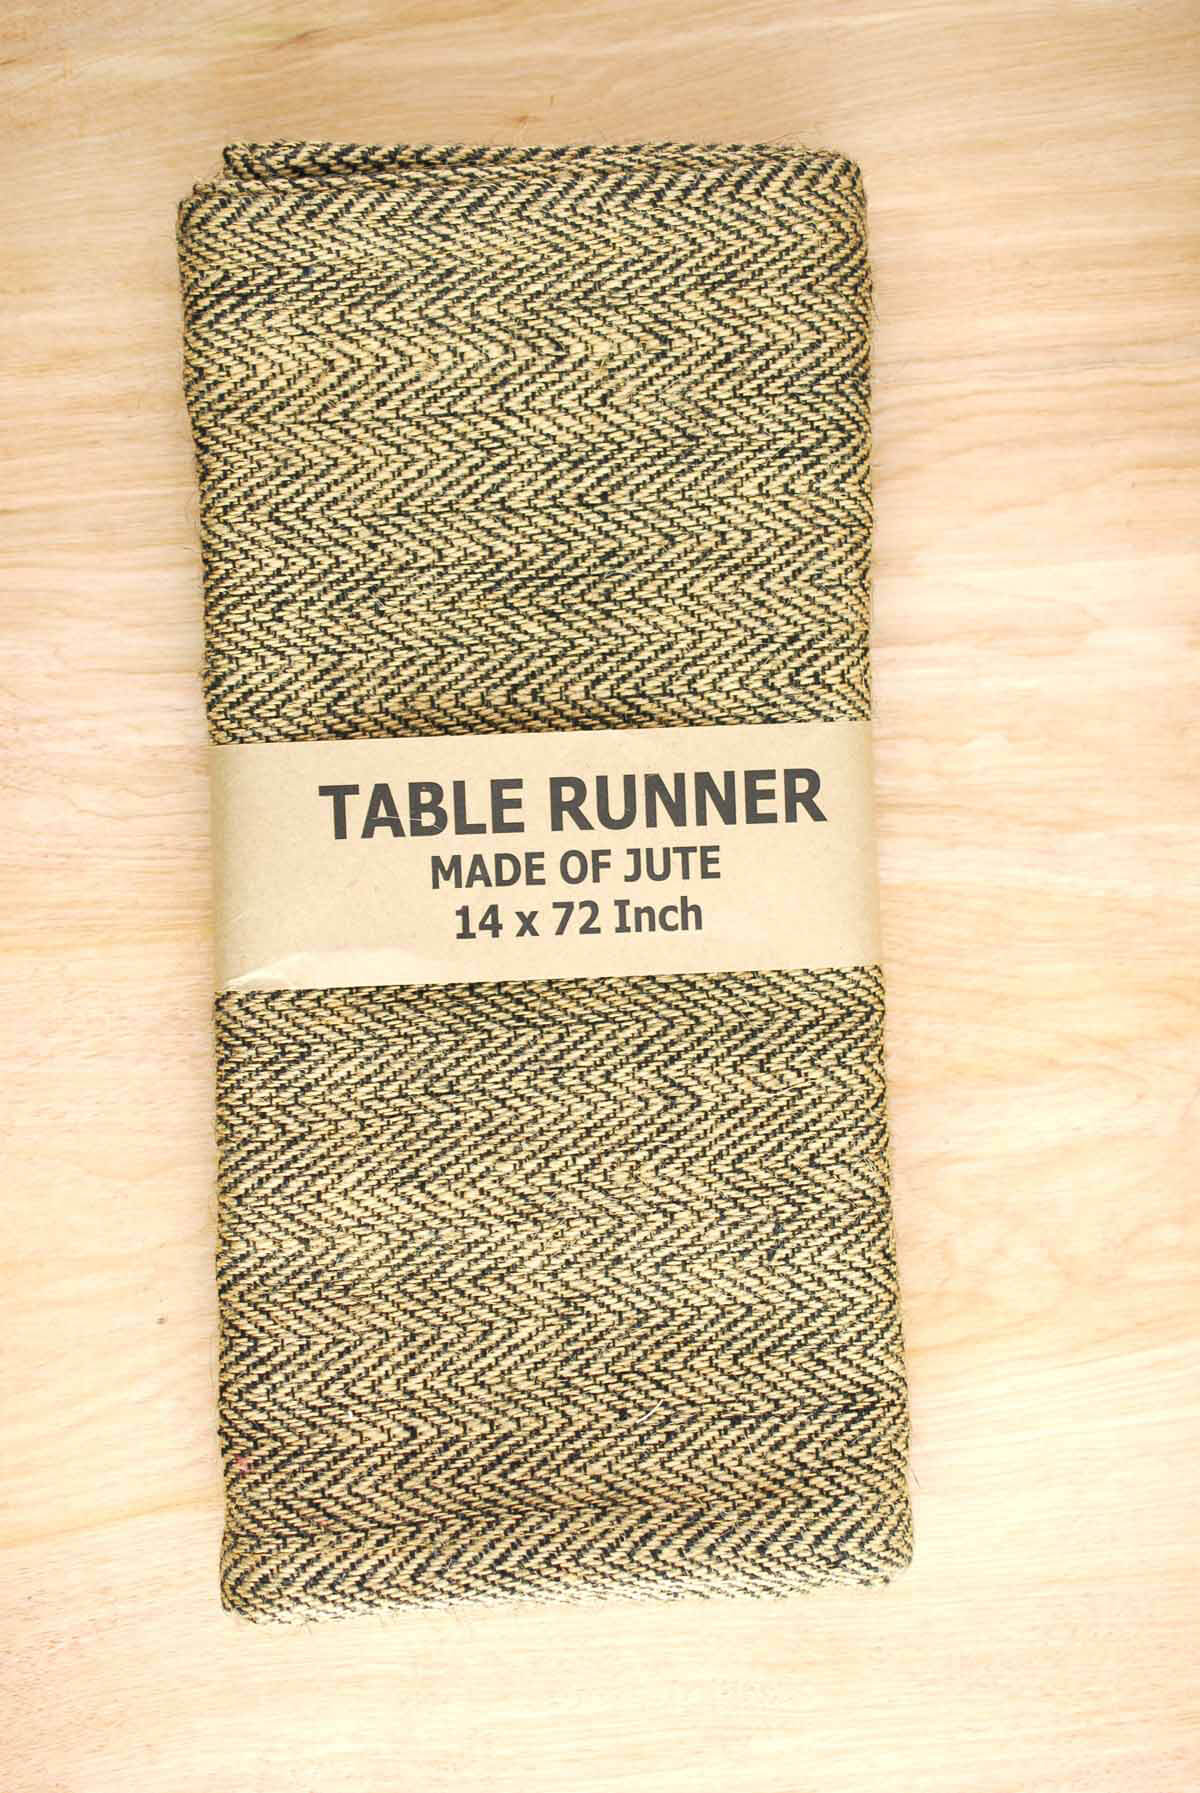 Bamboo black table runner 72 inches checkered kitchen linen dining - Jute Table Runner Herringbone Black 14x72in